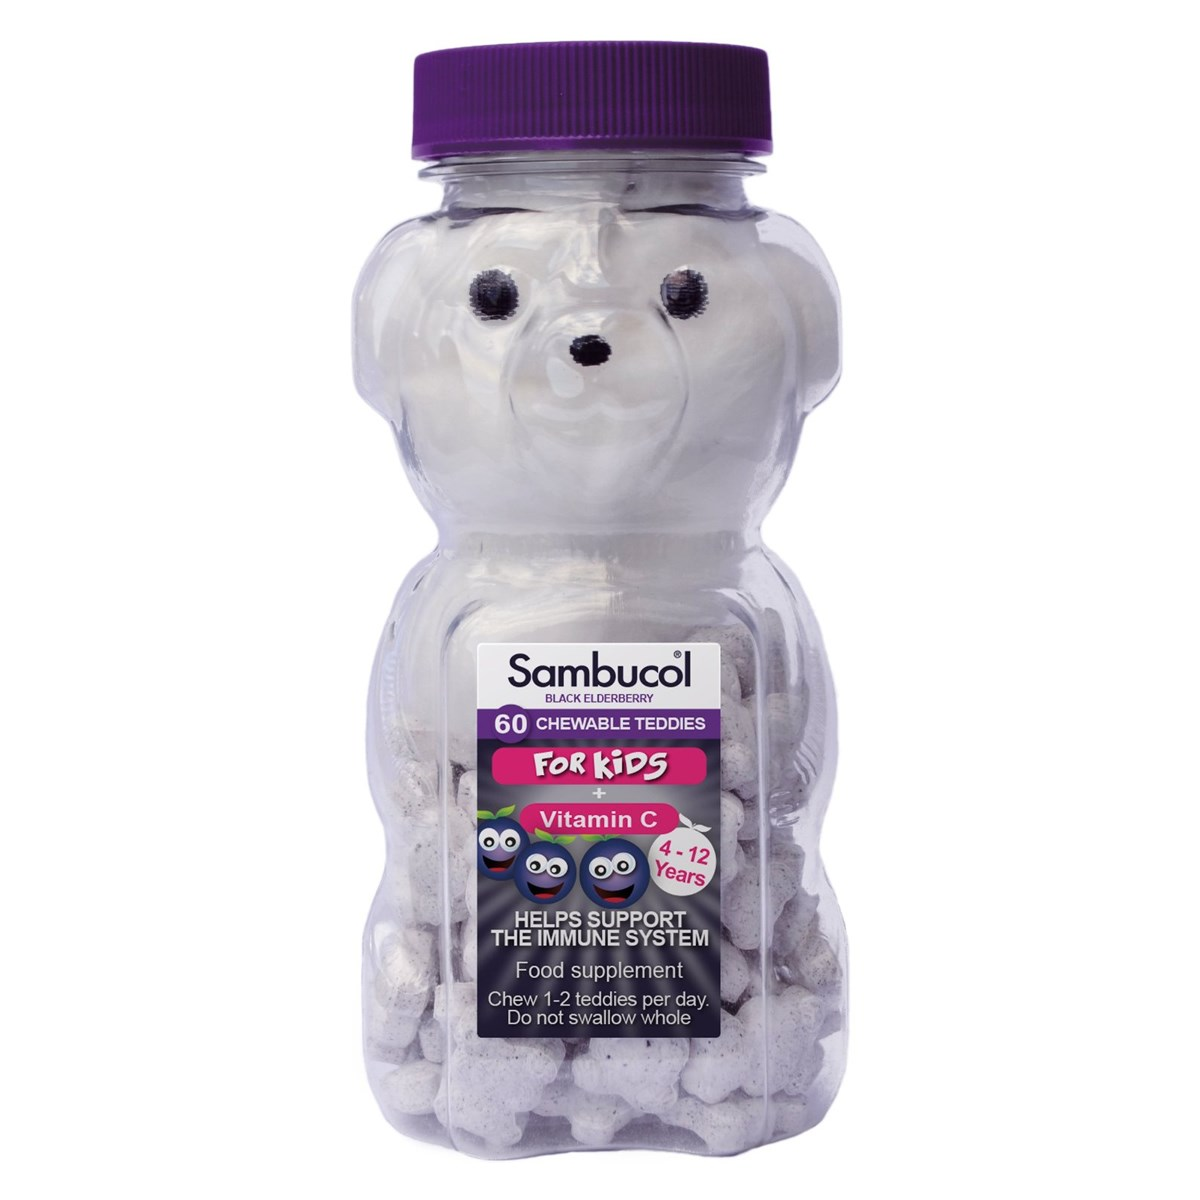 Sambucol Black Elderberry Teddies Chewables